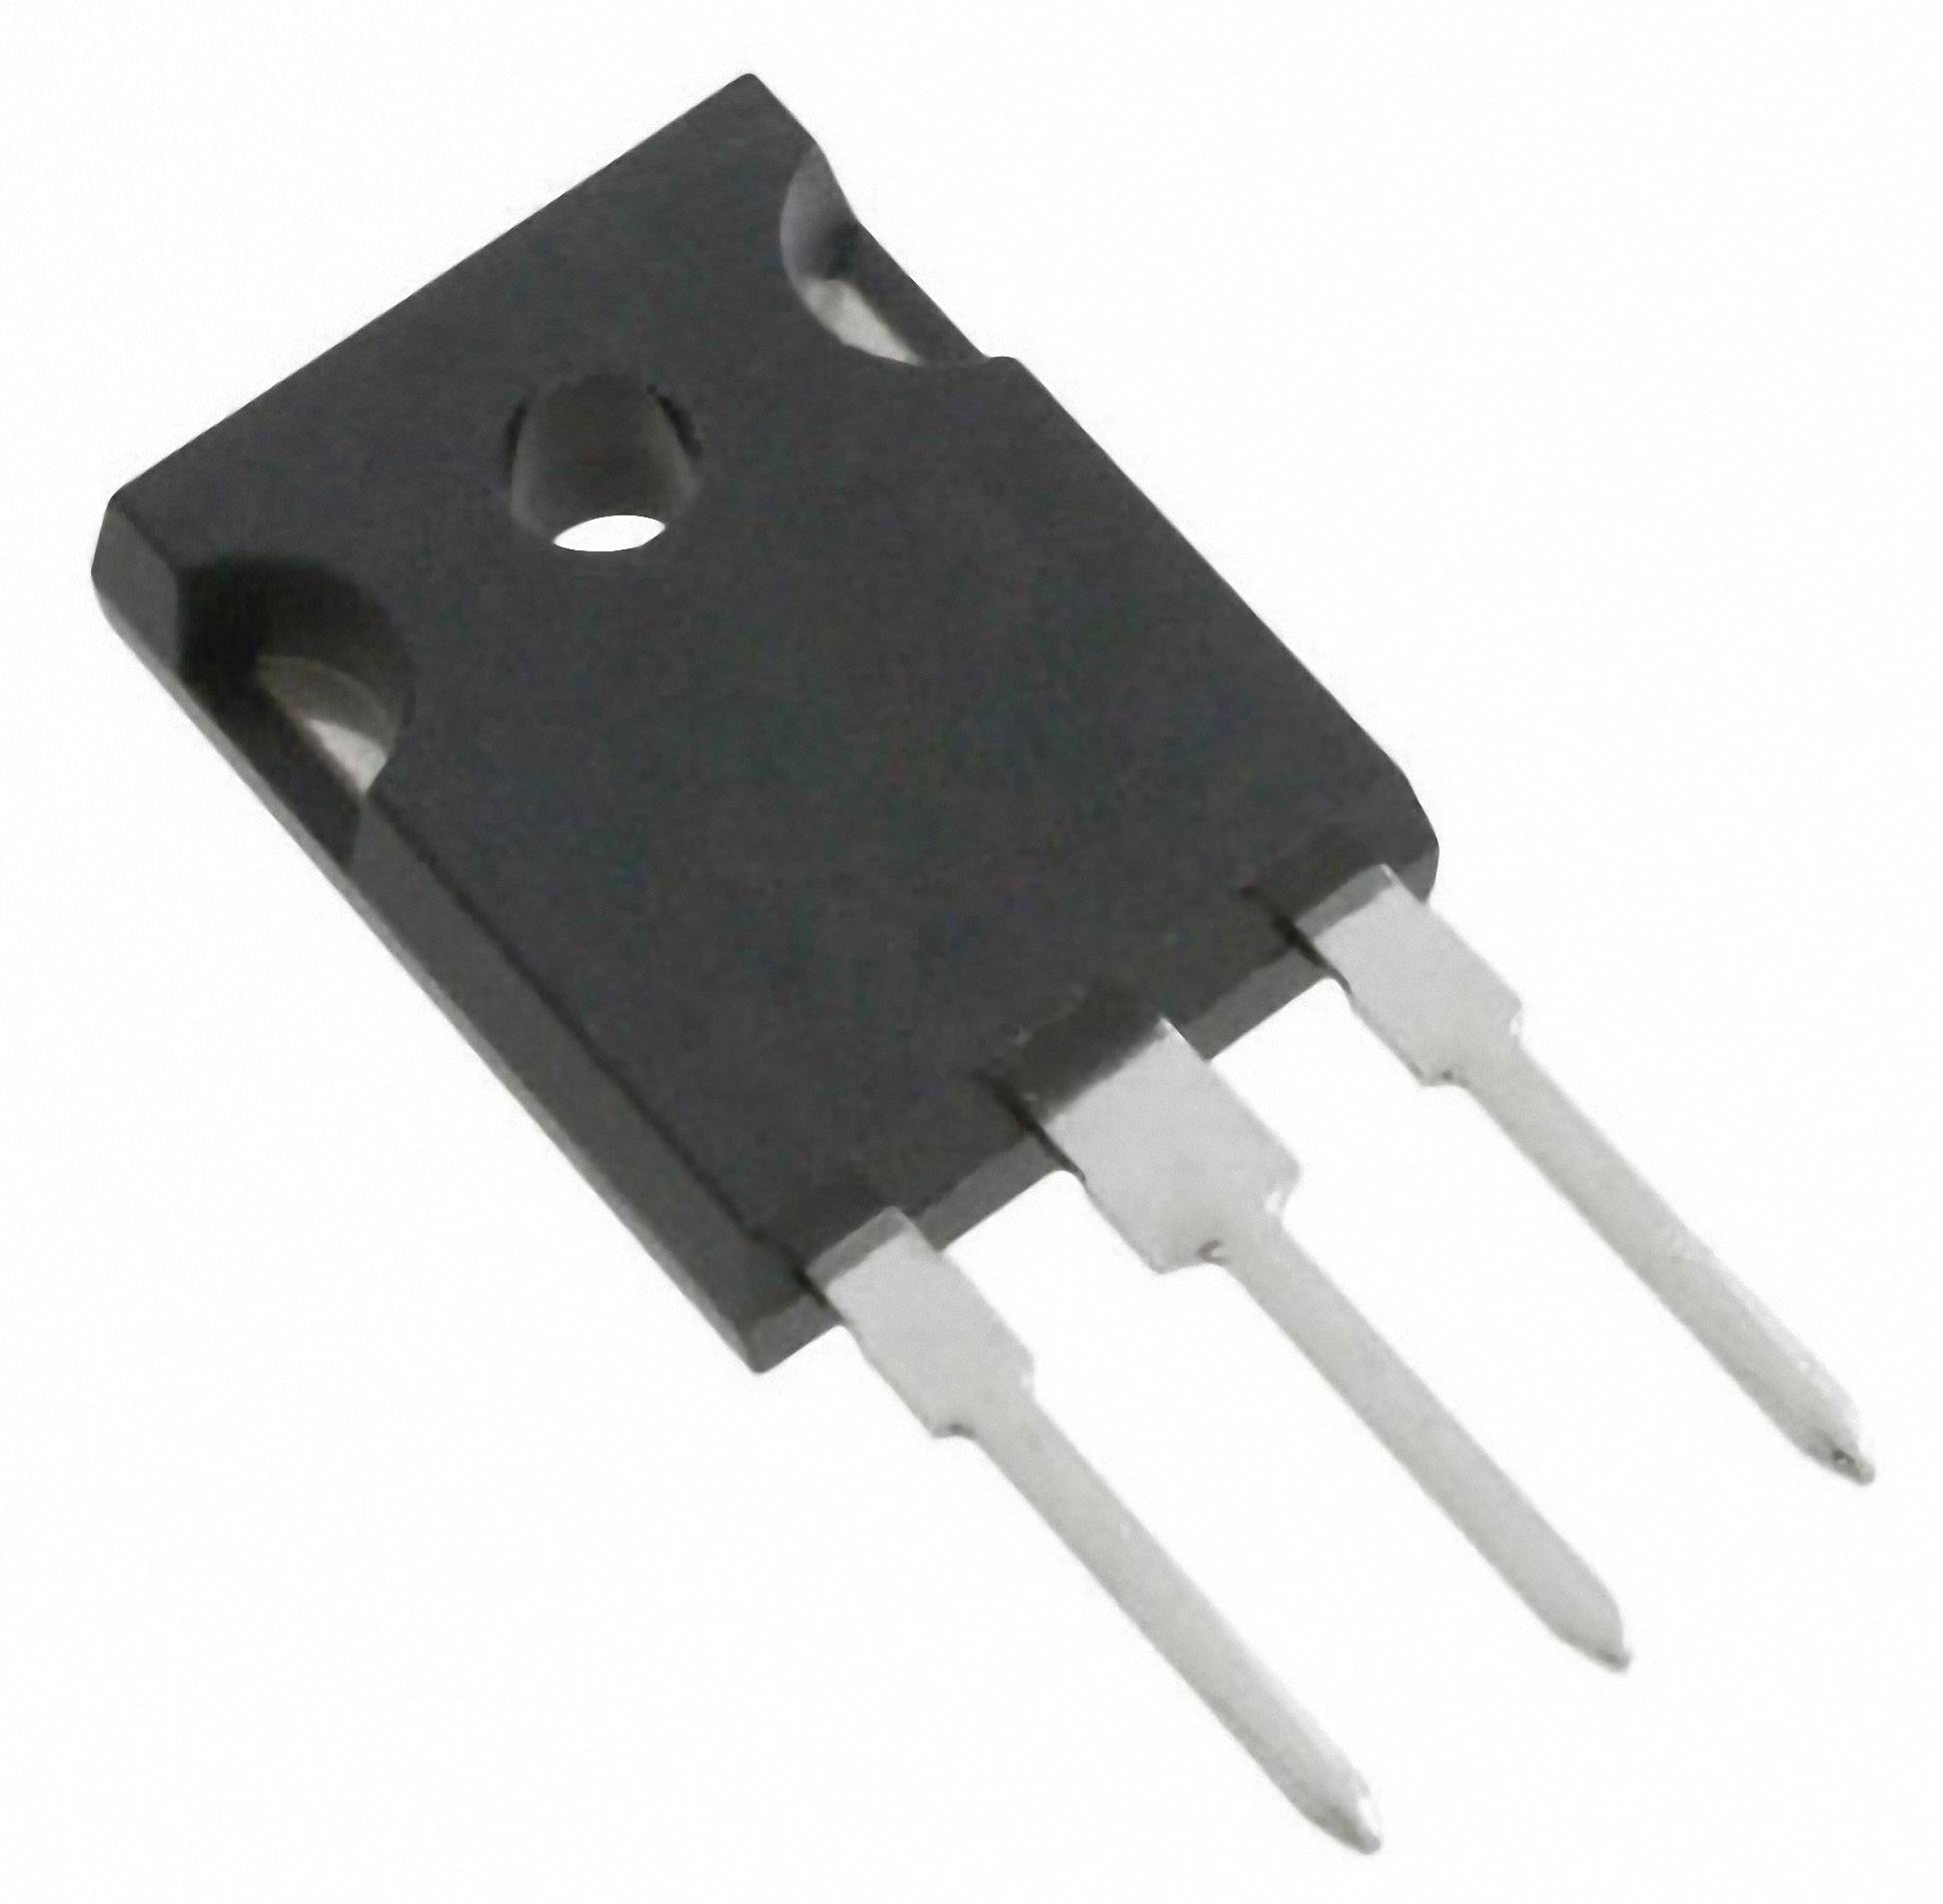 MOSFET Fairchild Semiconductor N kanál N CH 600V FCH041N60F TO-247-3 FSC